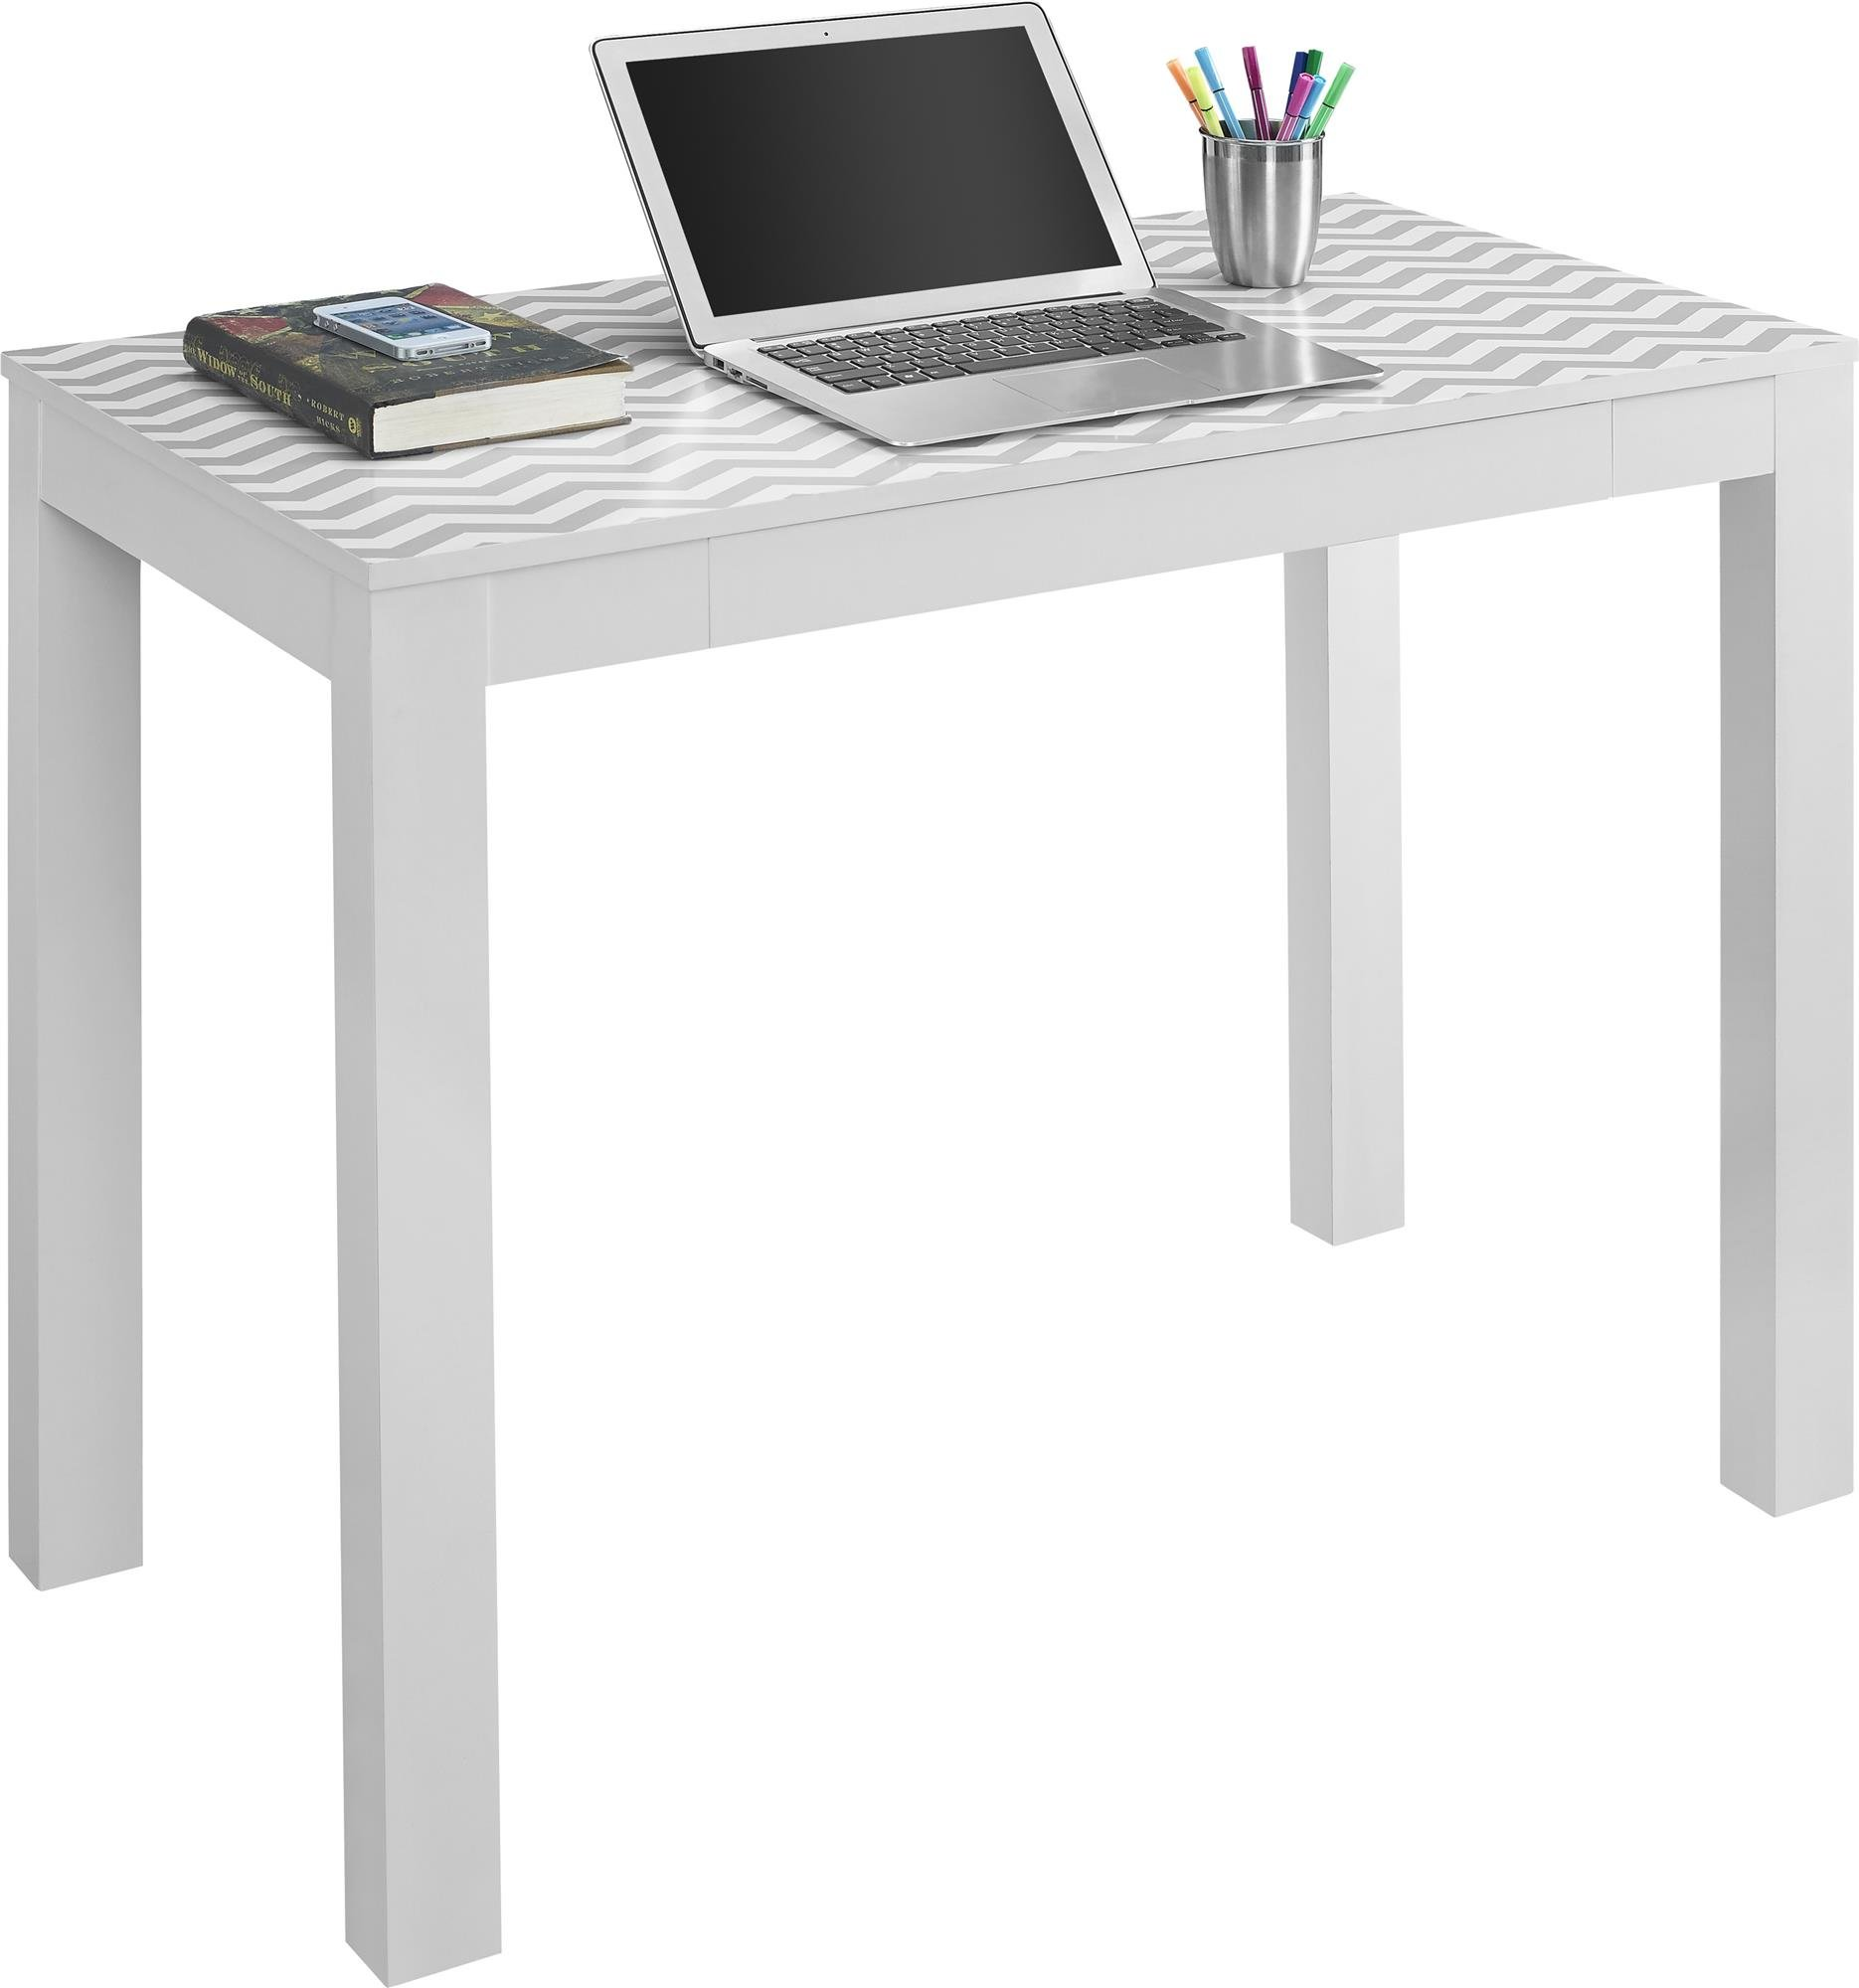 Ameriwood Home Parsons Desk Drawer, White/Gray Chevron by Ameriwood Home (Image #3)